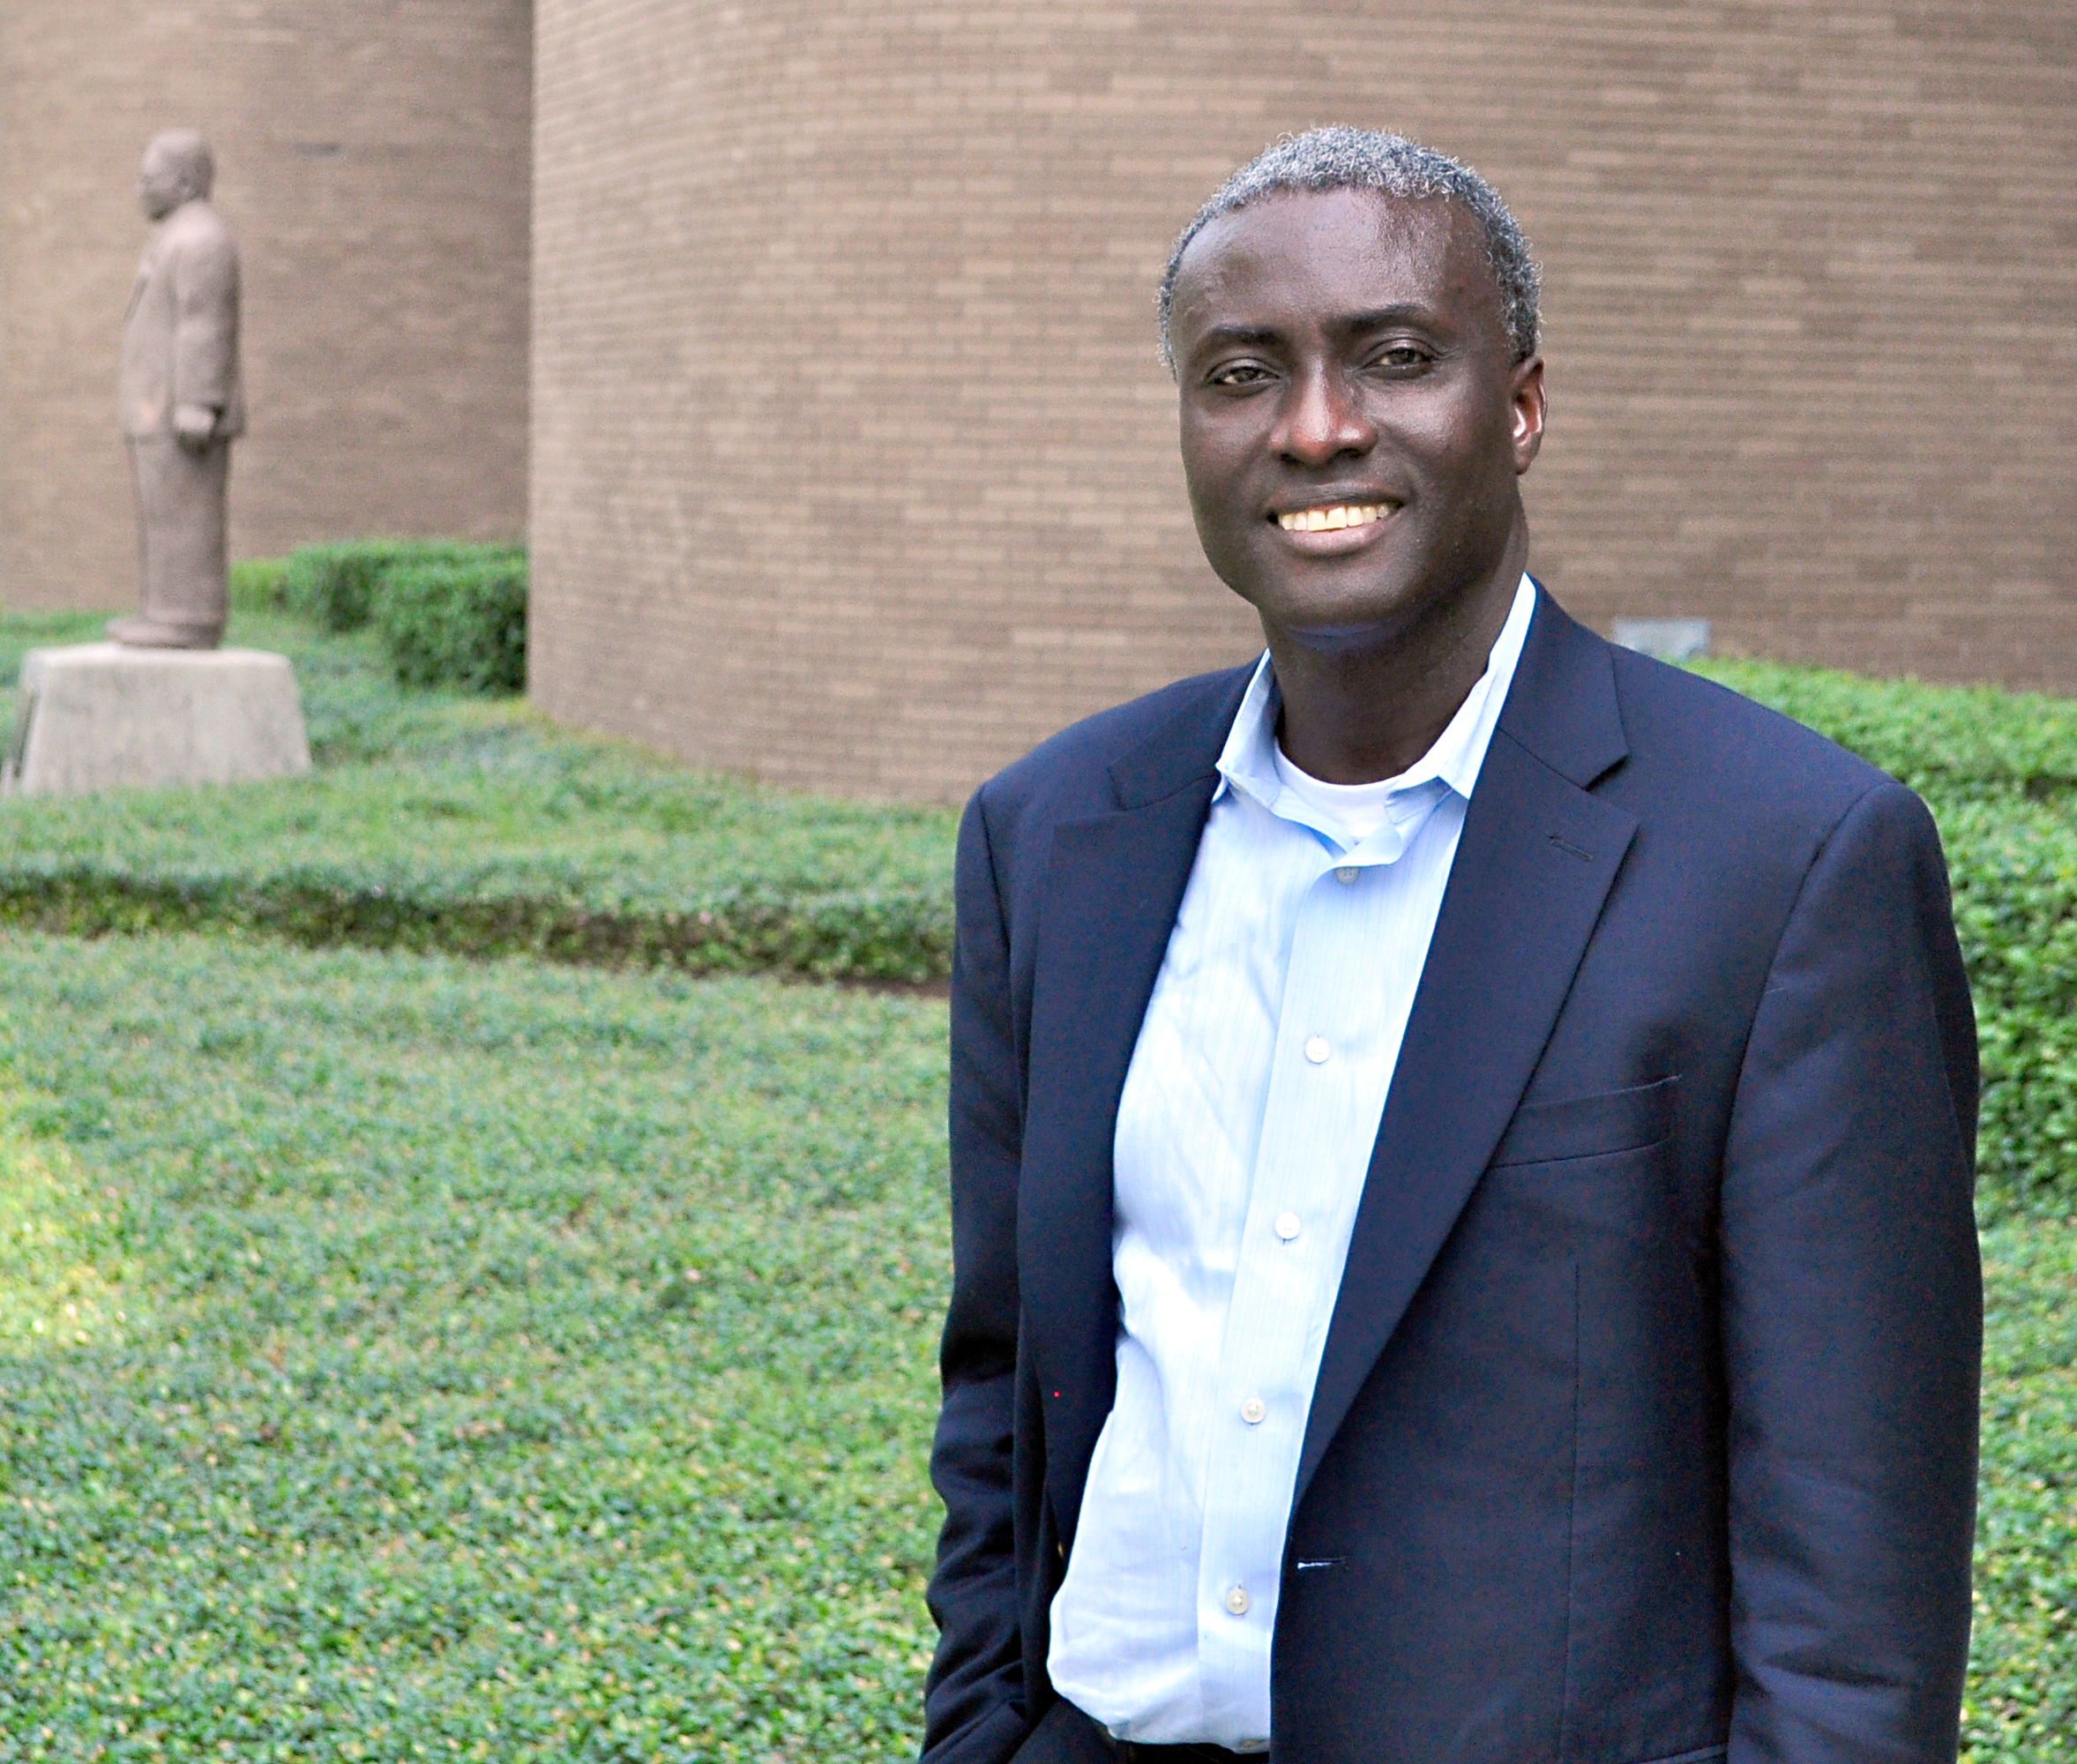 Dr. Patrick Mensah. Photo by John Oubre, photographer for Office of Media Relations